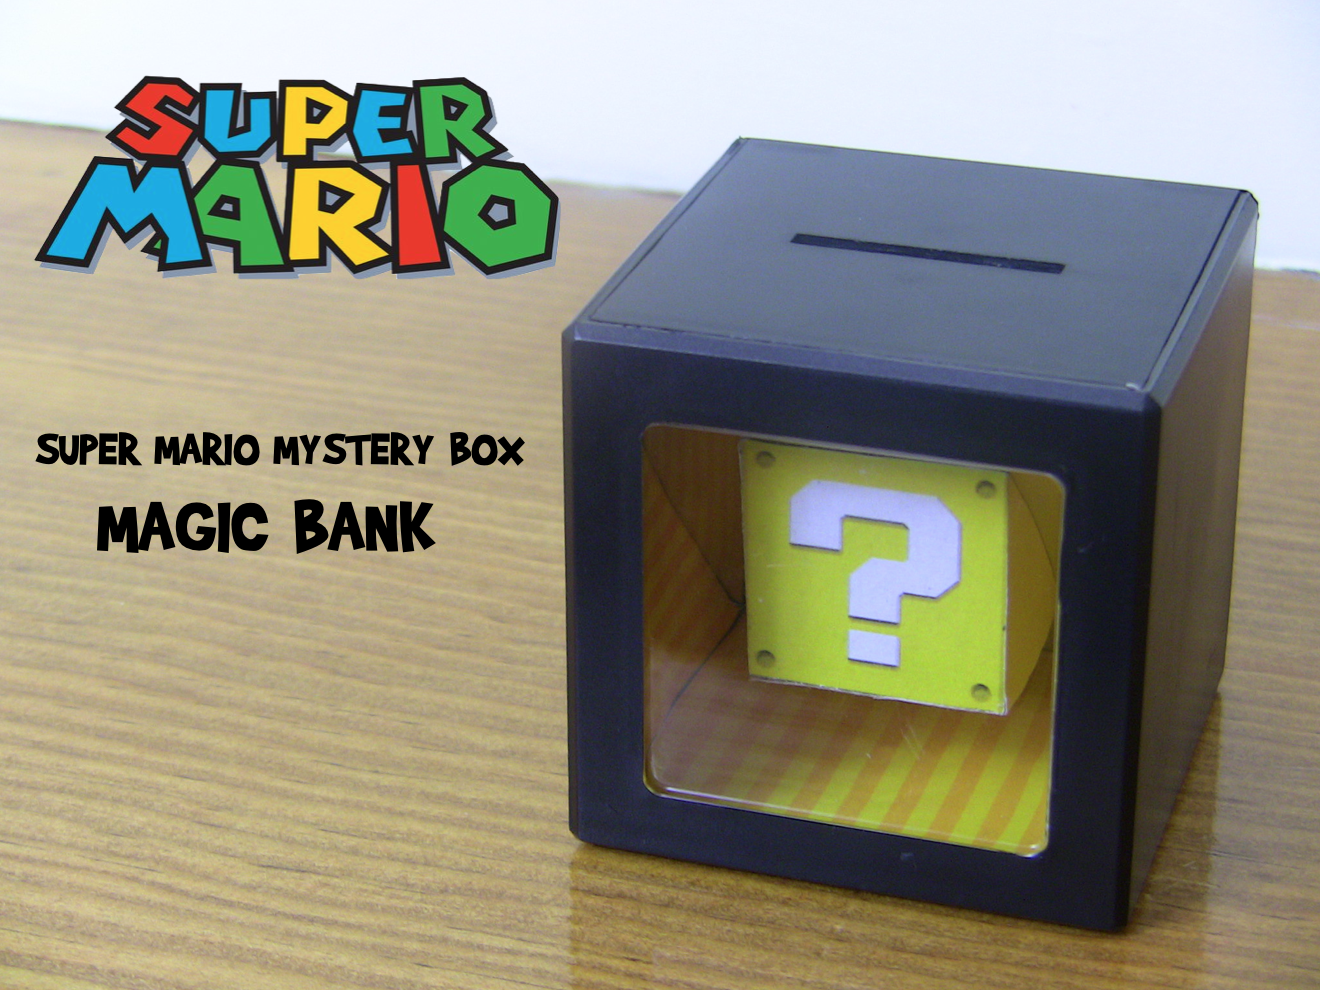 Super Mario Mystery Box Magic Bank